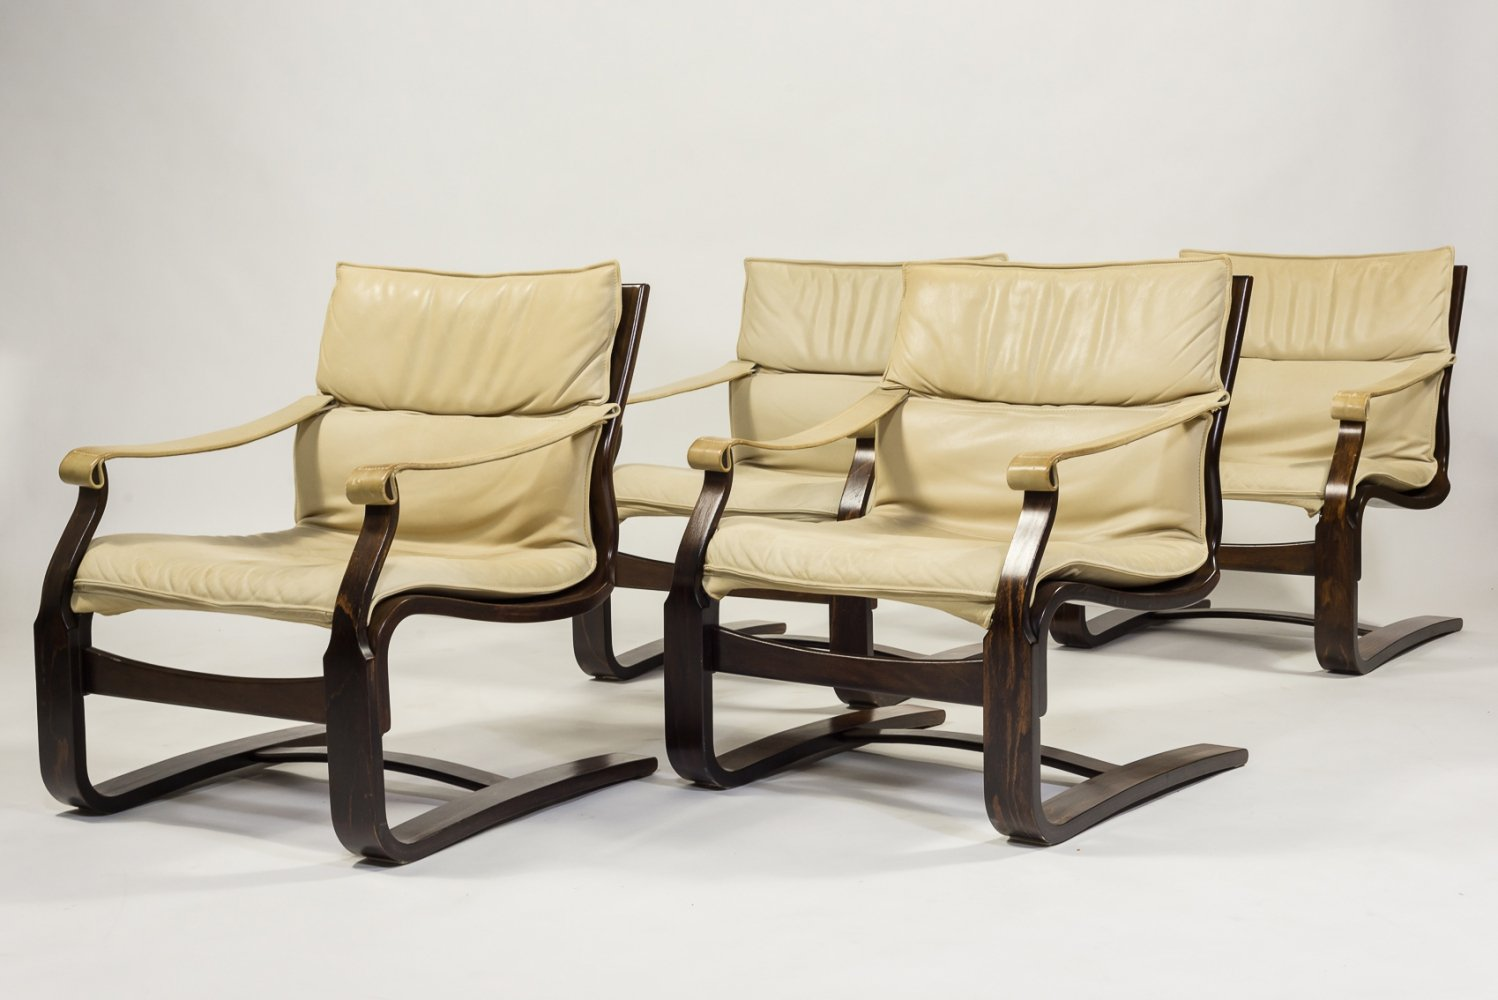 Four Ake Fribytter vintage armchairs, 1970